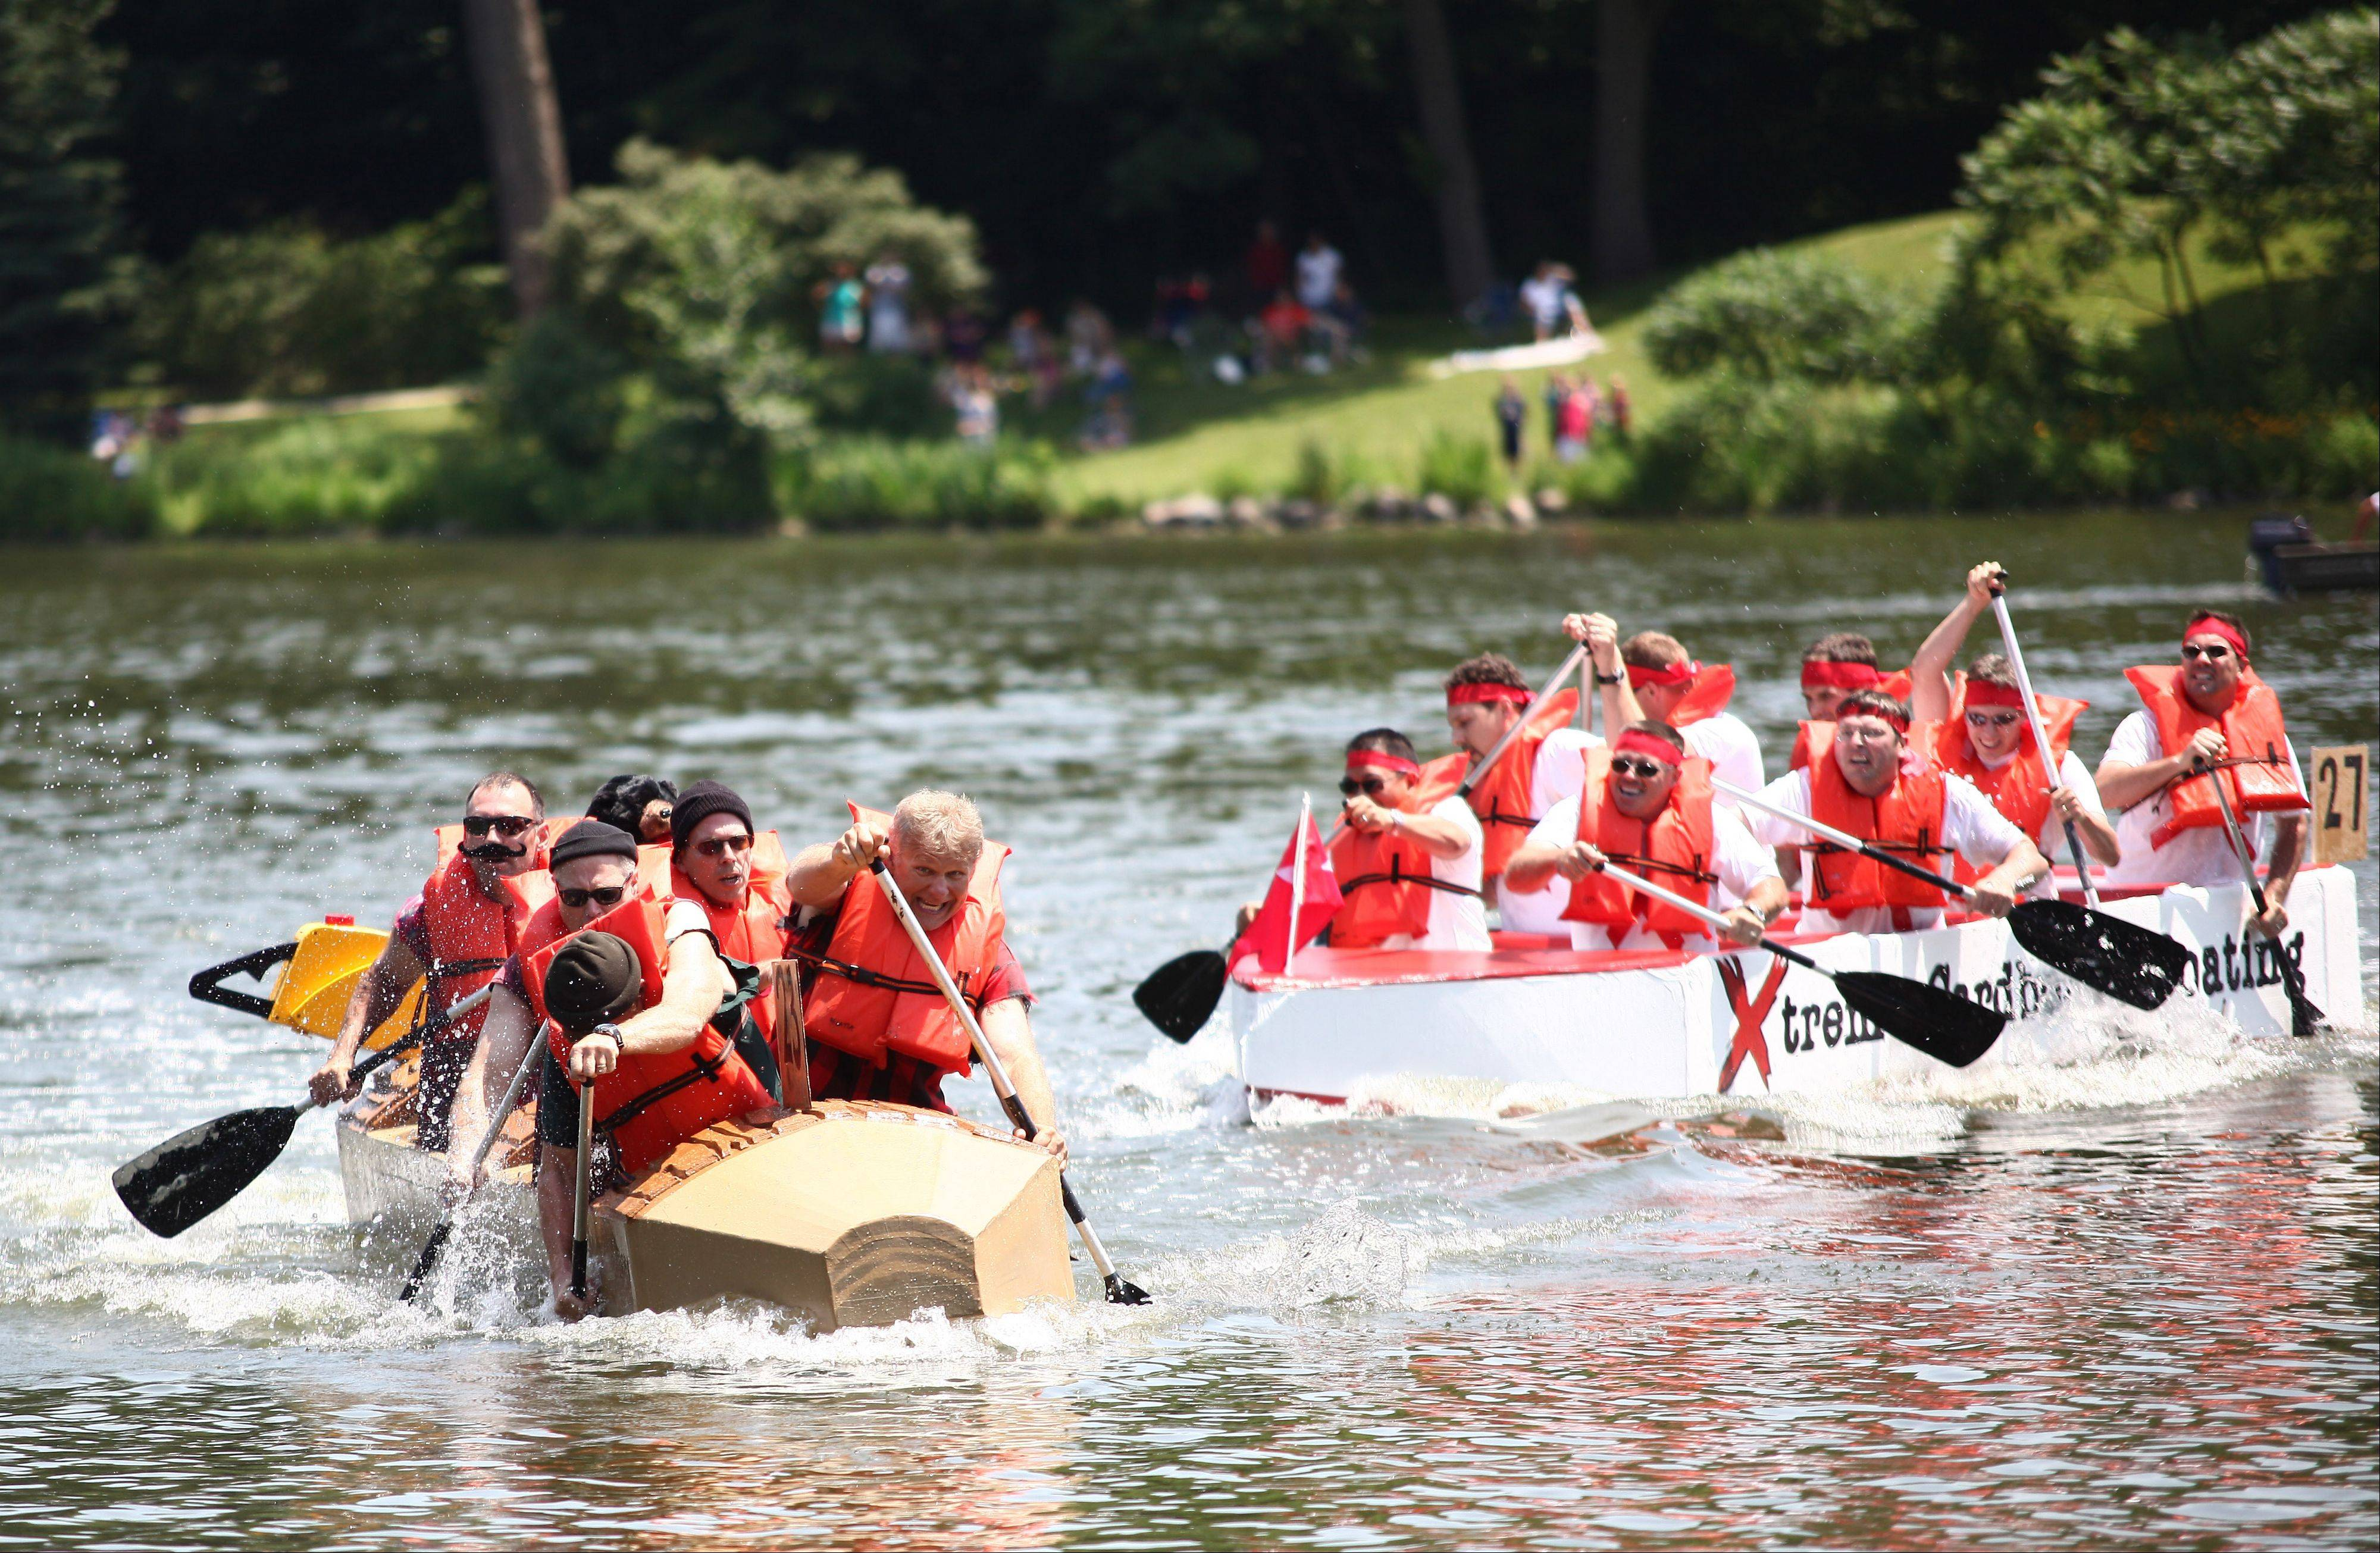 Glen Ellyn's Cardboard Regatta sets sail